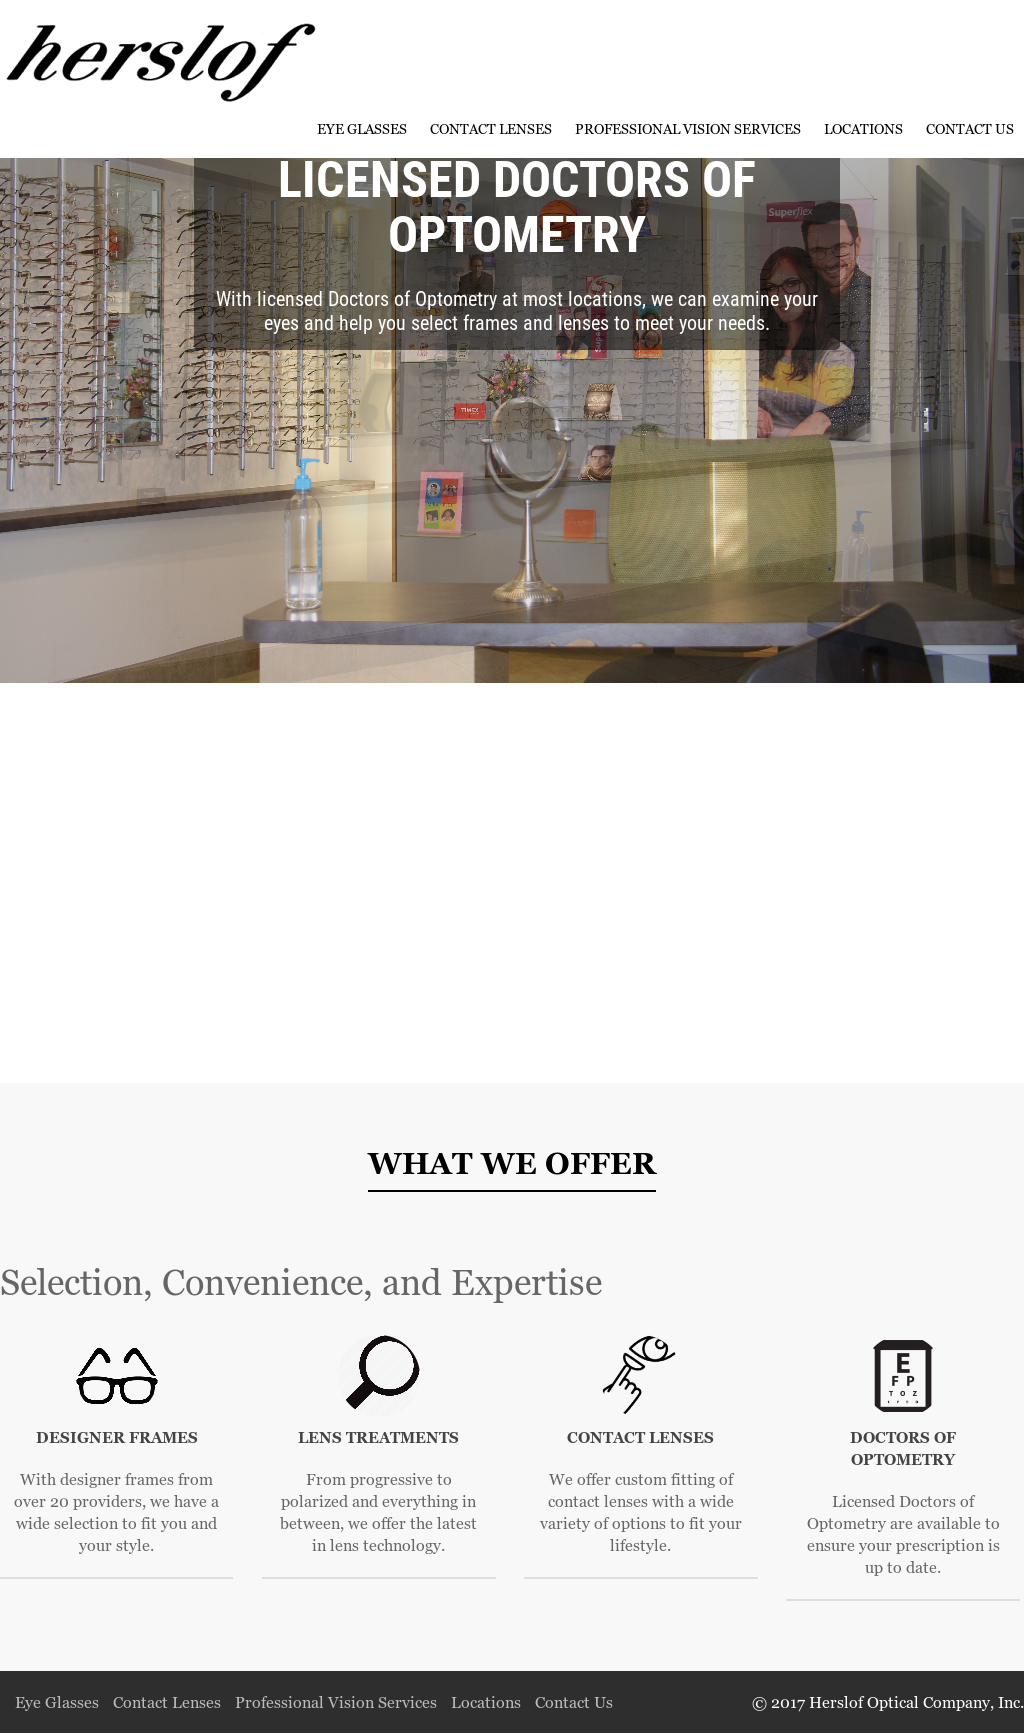 Herslof Opticians Competitors, Revenue and Employees - Owler Company